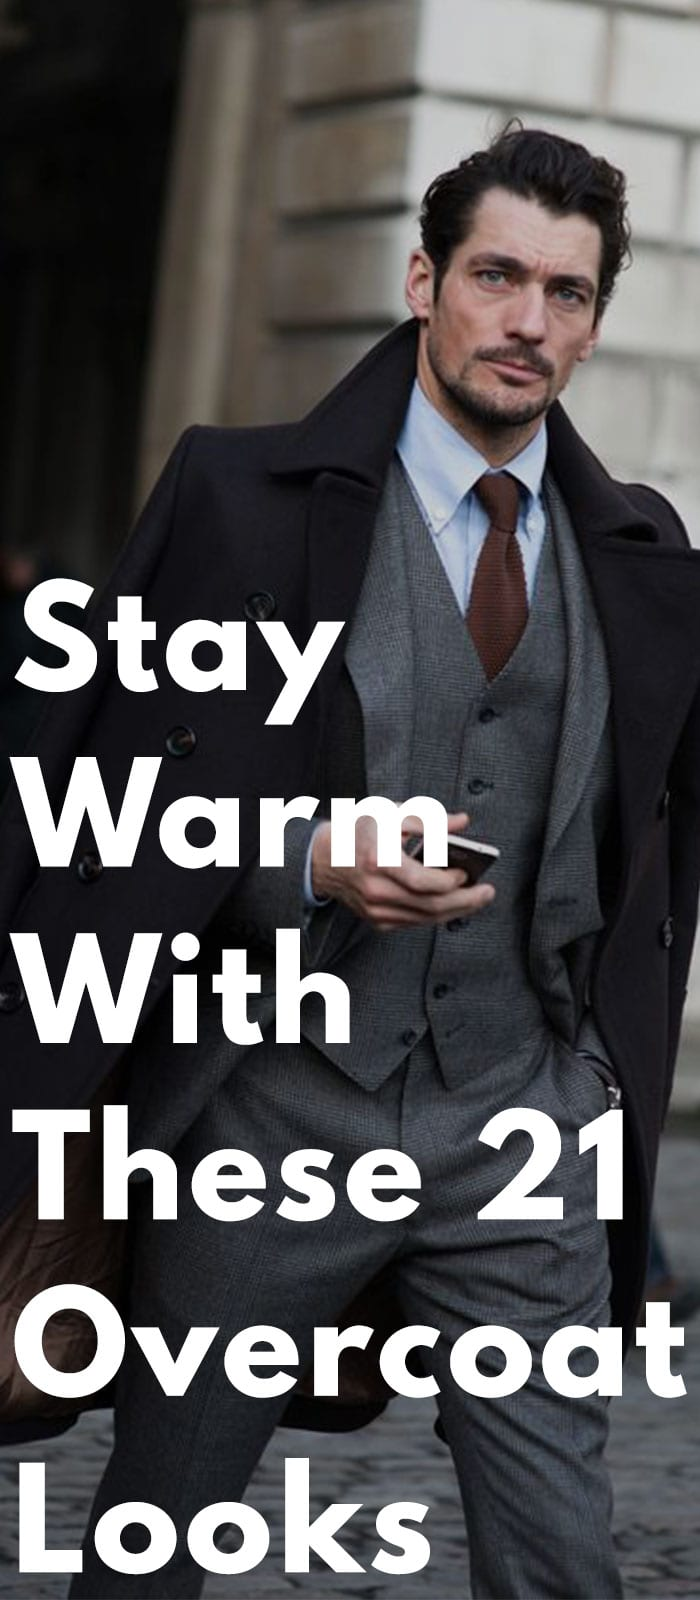 Stay-Warm-With-These-21-Overcoat-Looks